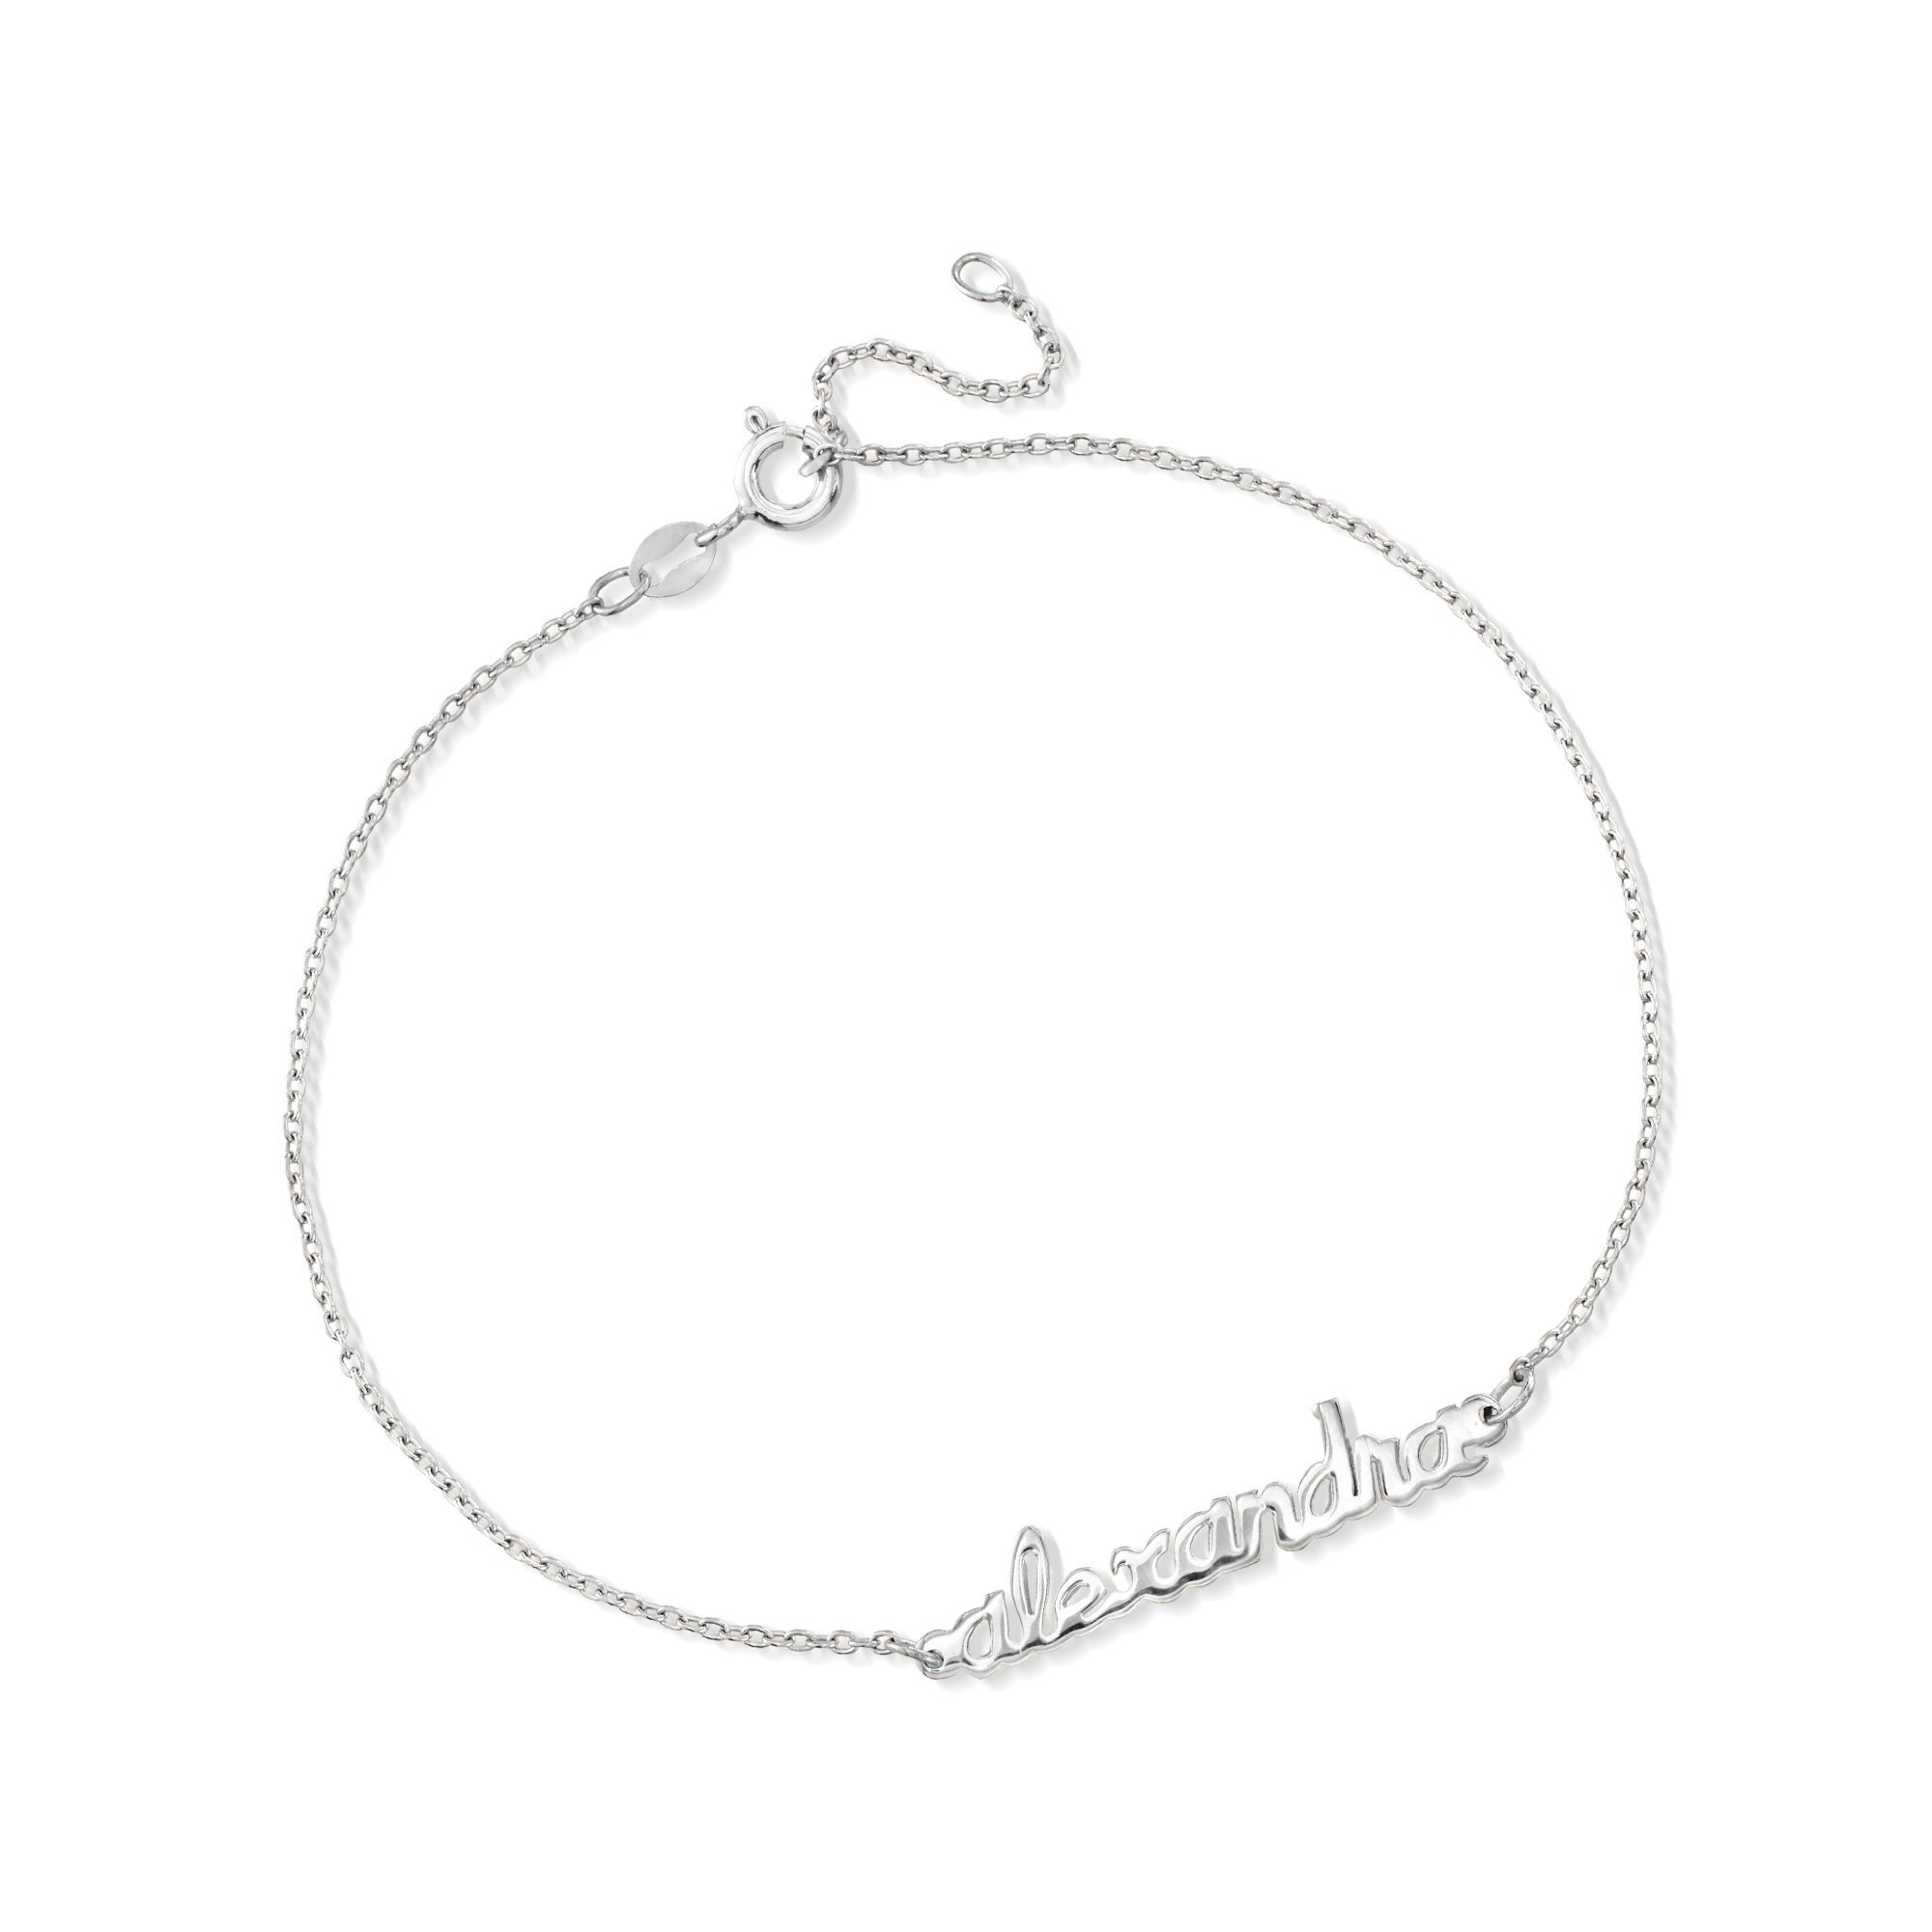 image sterling silver limoges moon jewelry name zoom engraved roll anklet to model larger drag half over